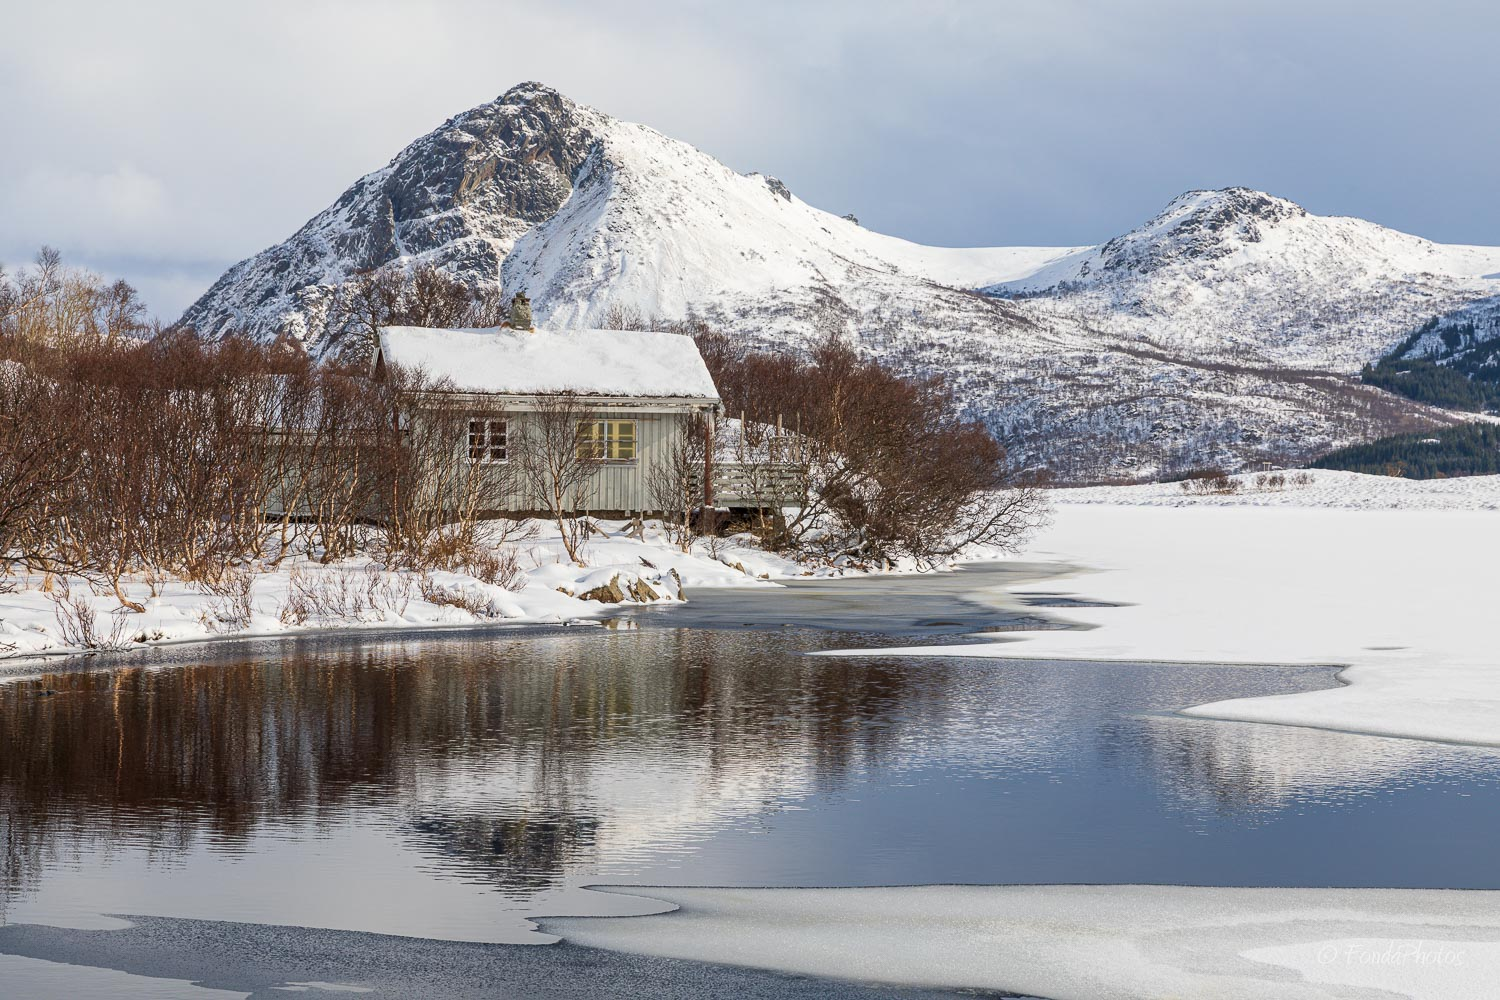 Cabin on Lilandsvatnet, Lofoten Islands